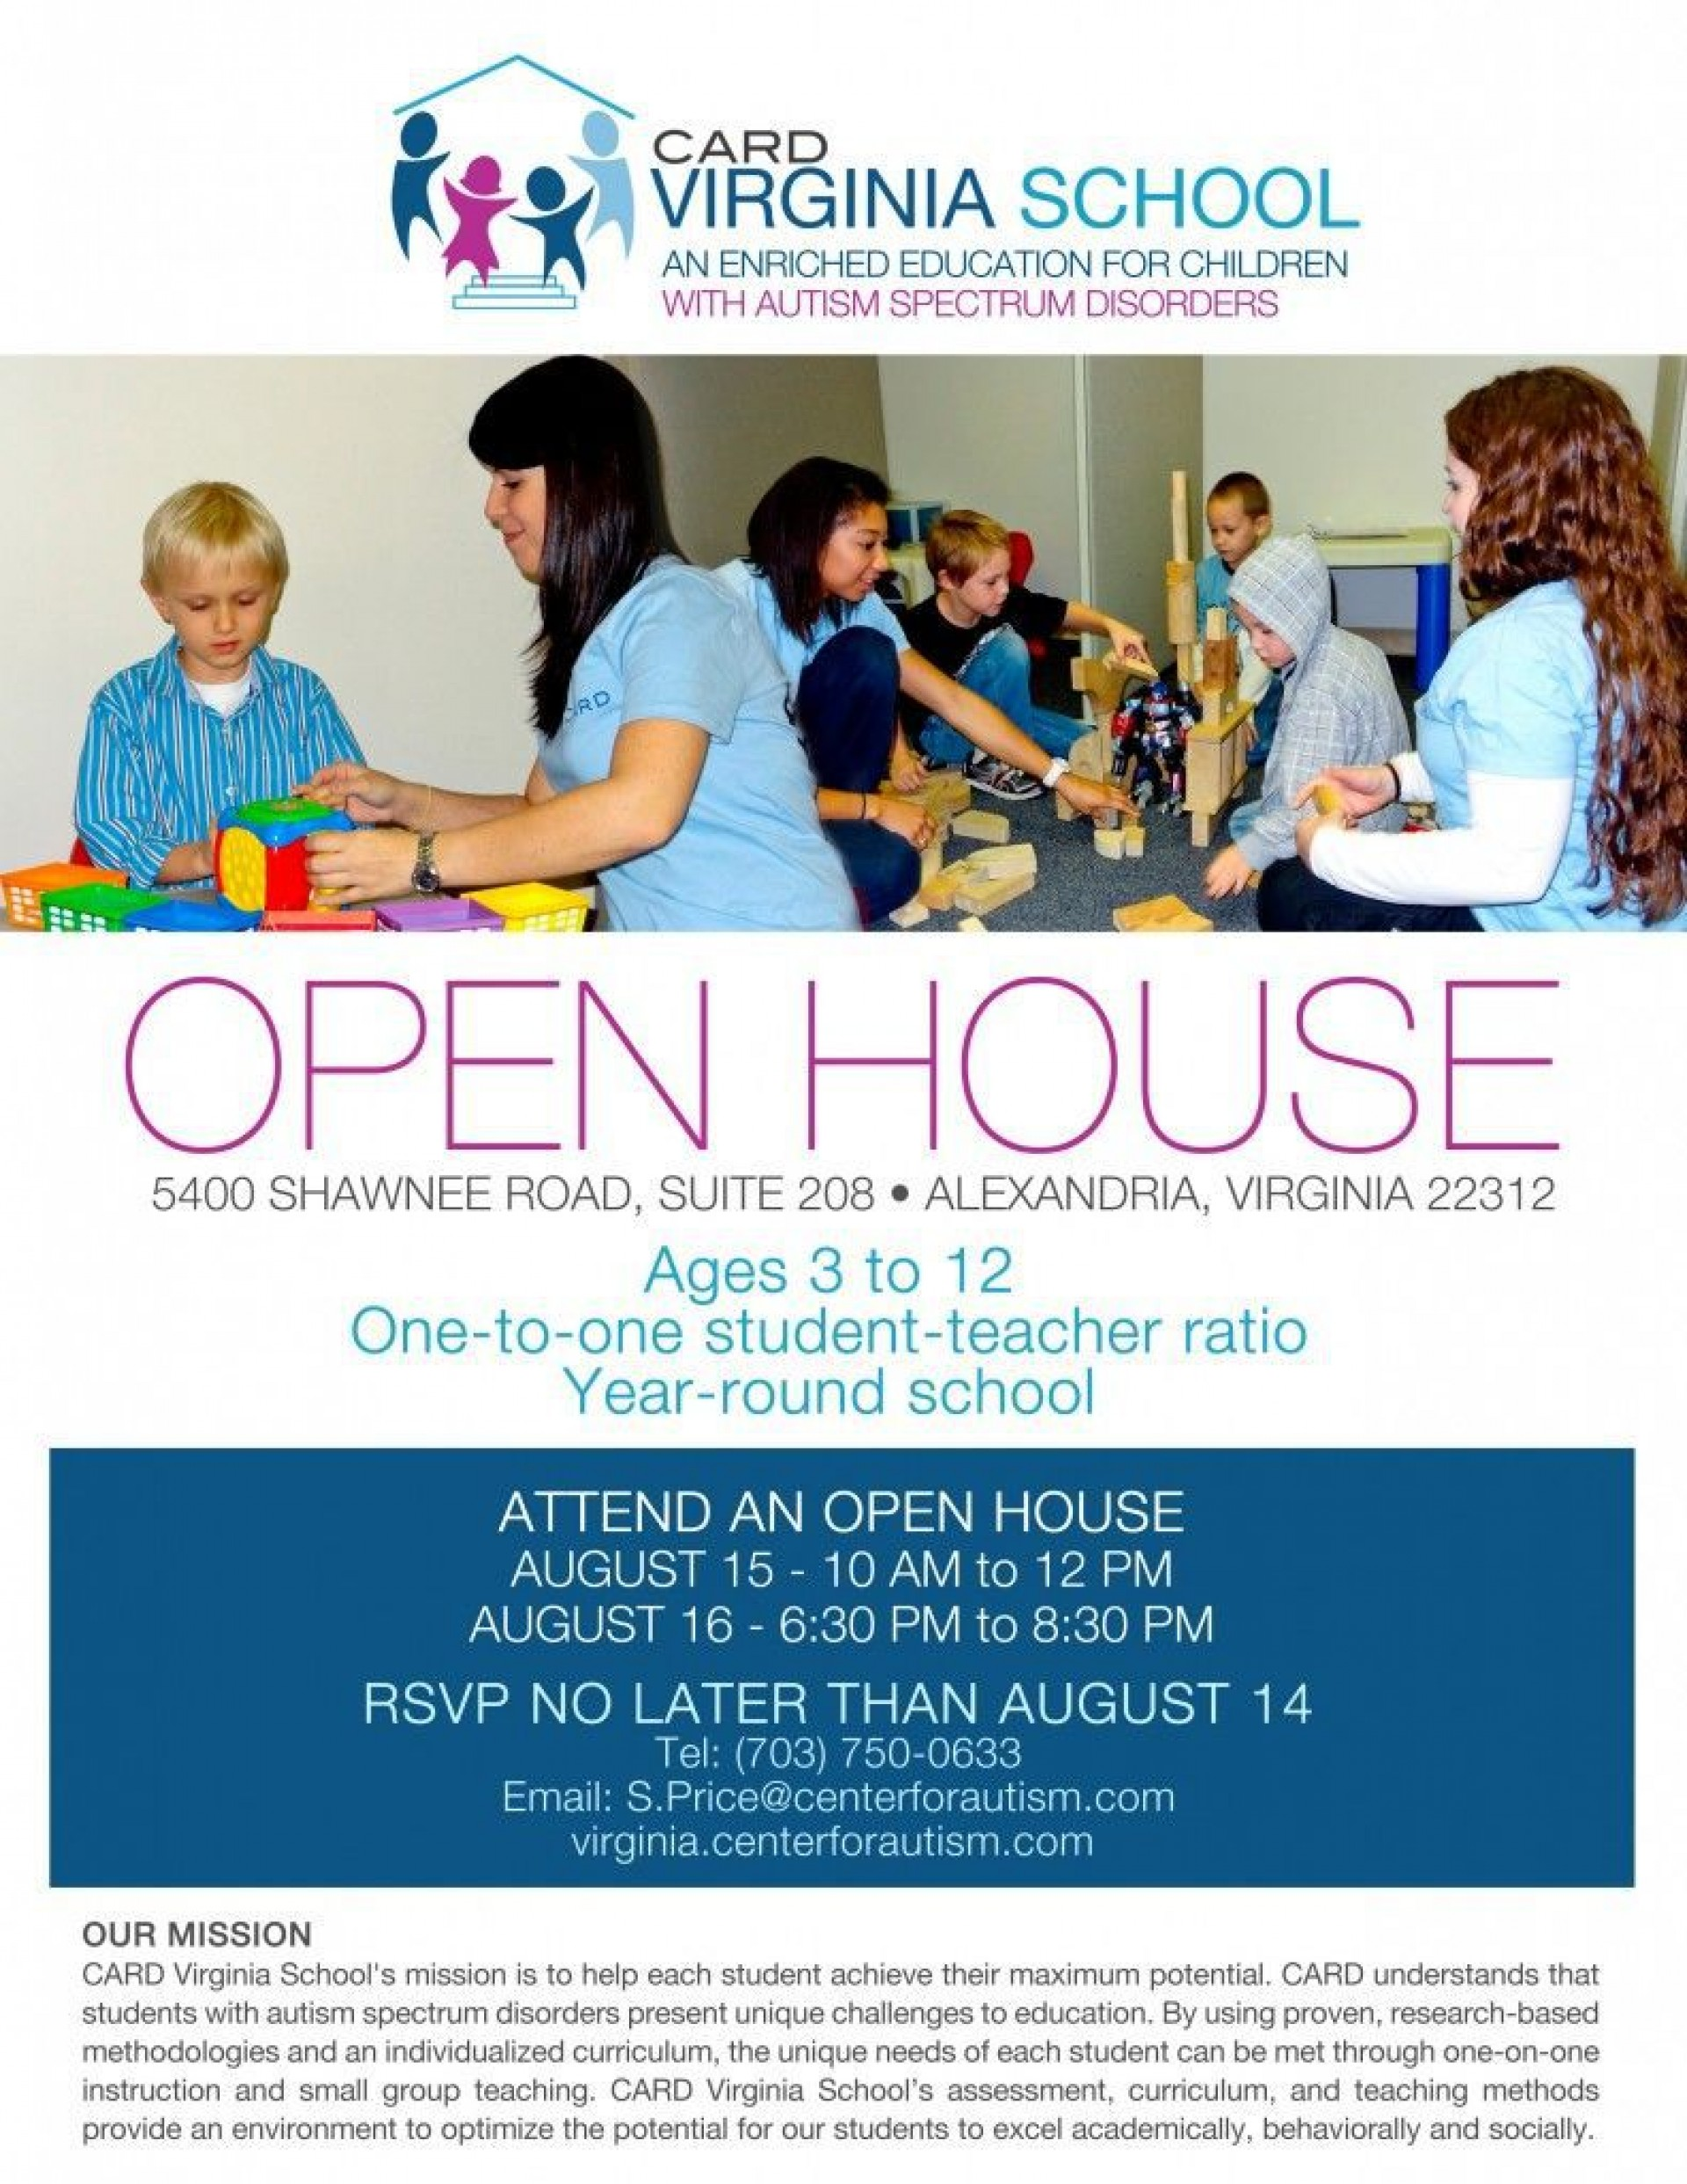 003 Surprising School Open House Flyer Template Image  Elementary Free Word1920